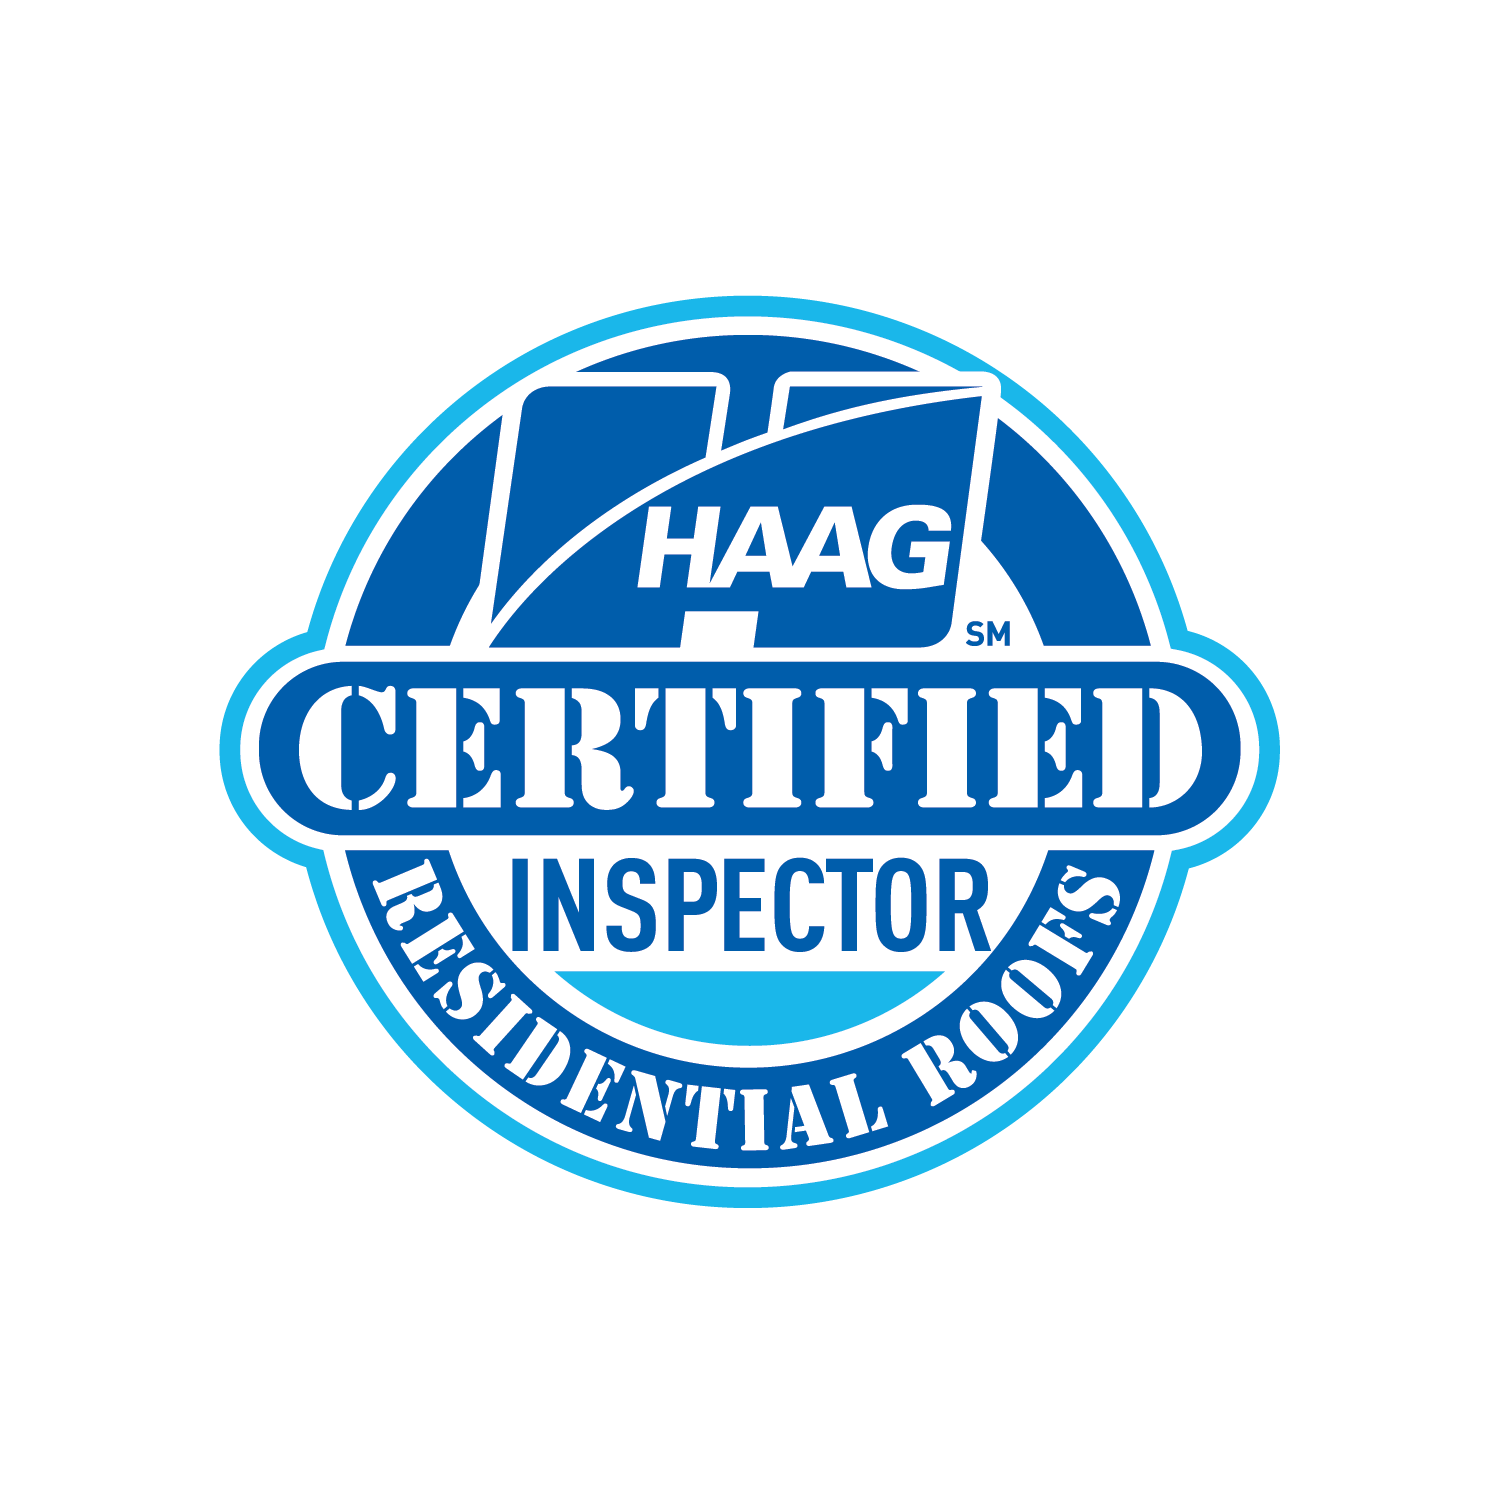 Haag certification logo